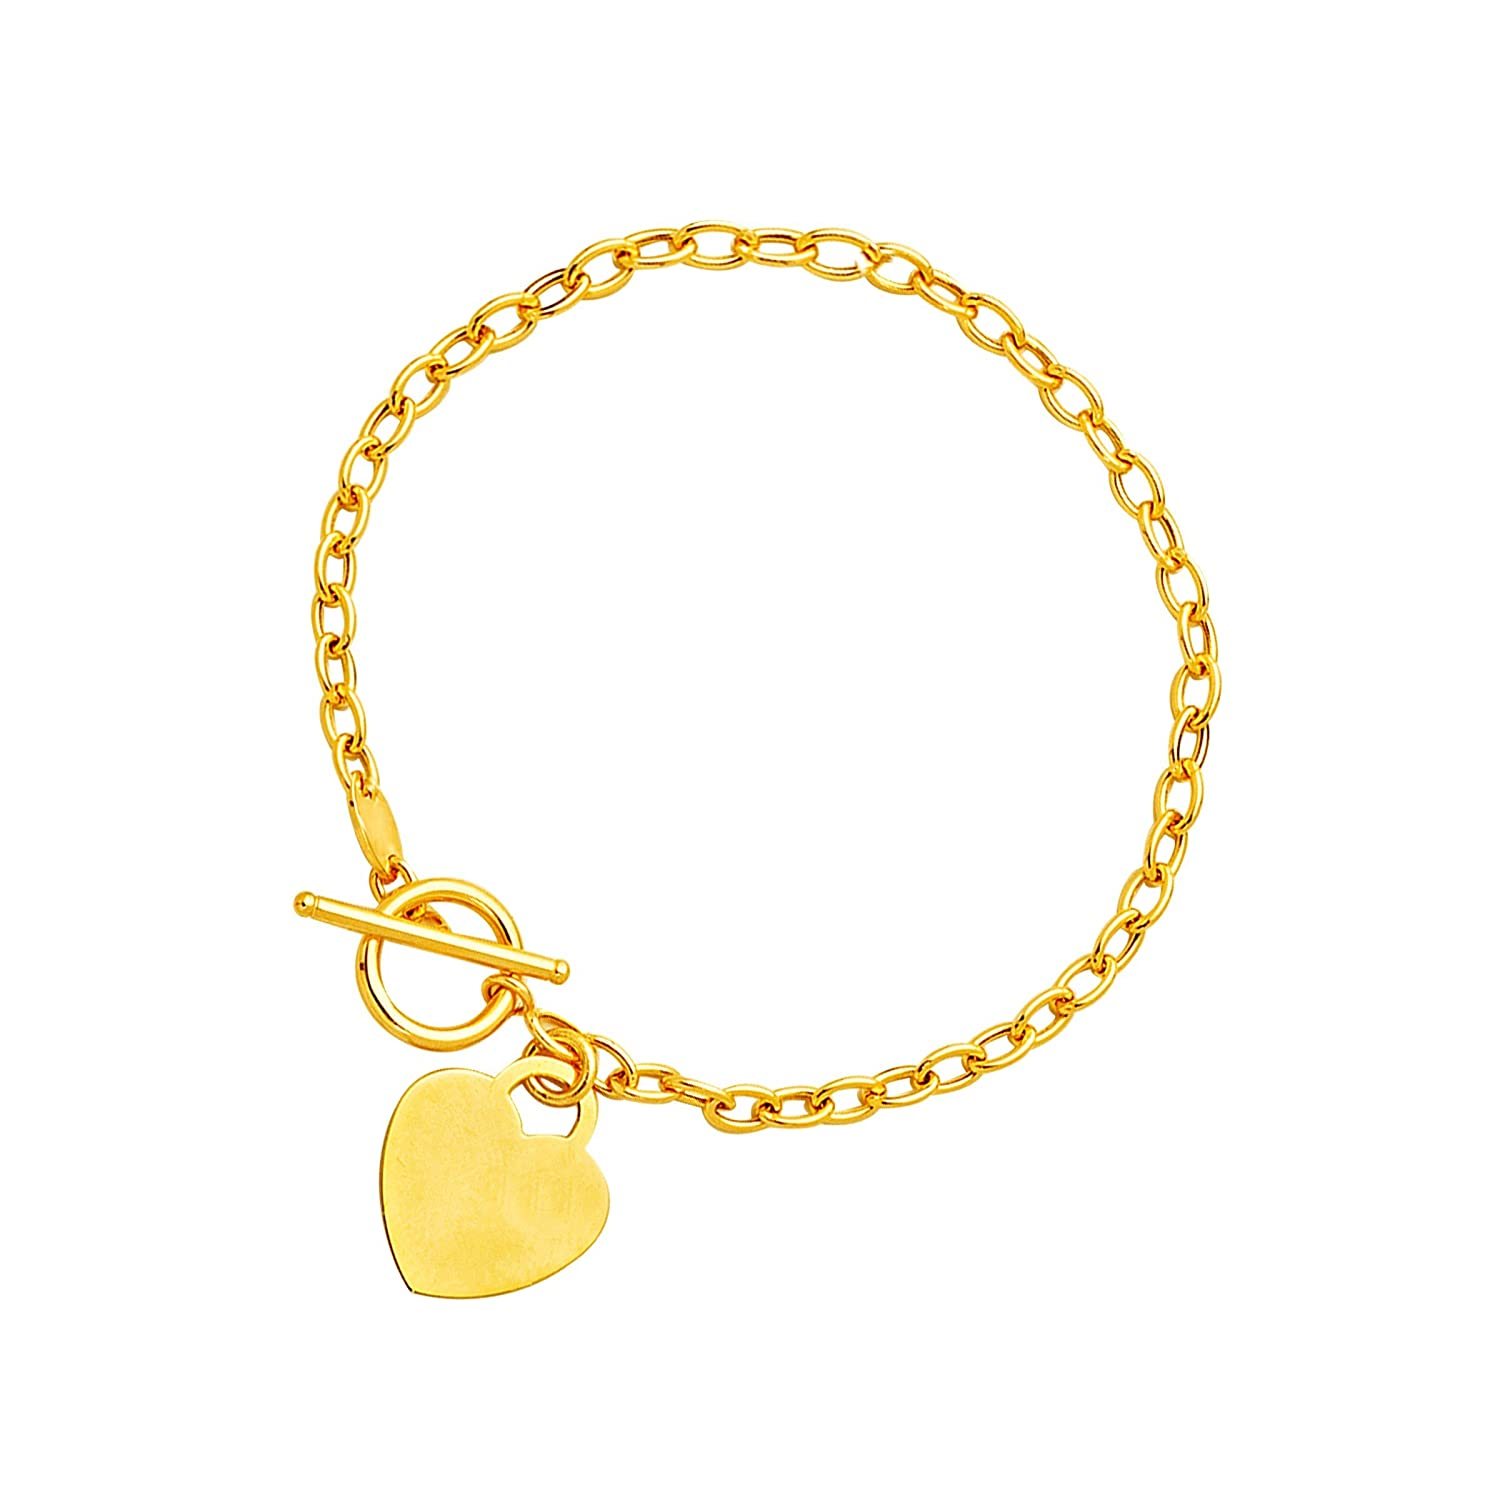 Toggle Bracelet with Heart Charm in 14 Kイエローゴールド   B07B4D631X